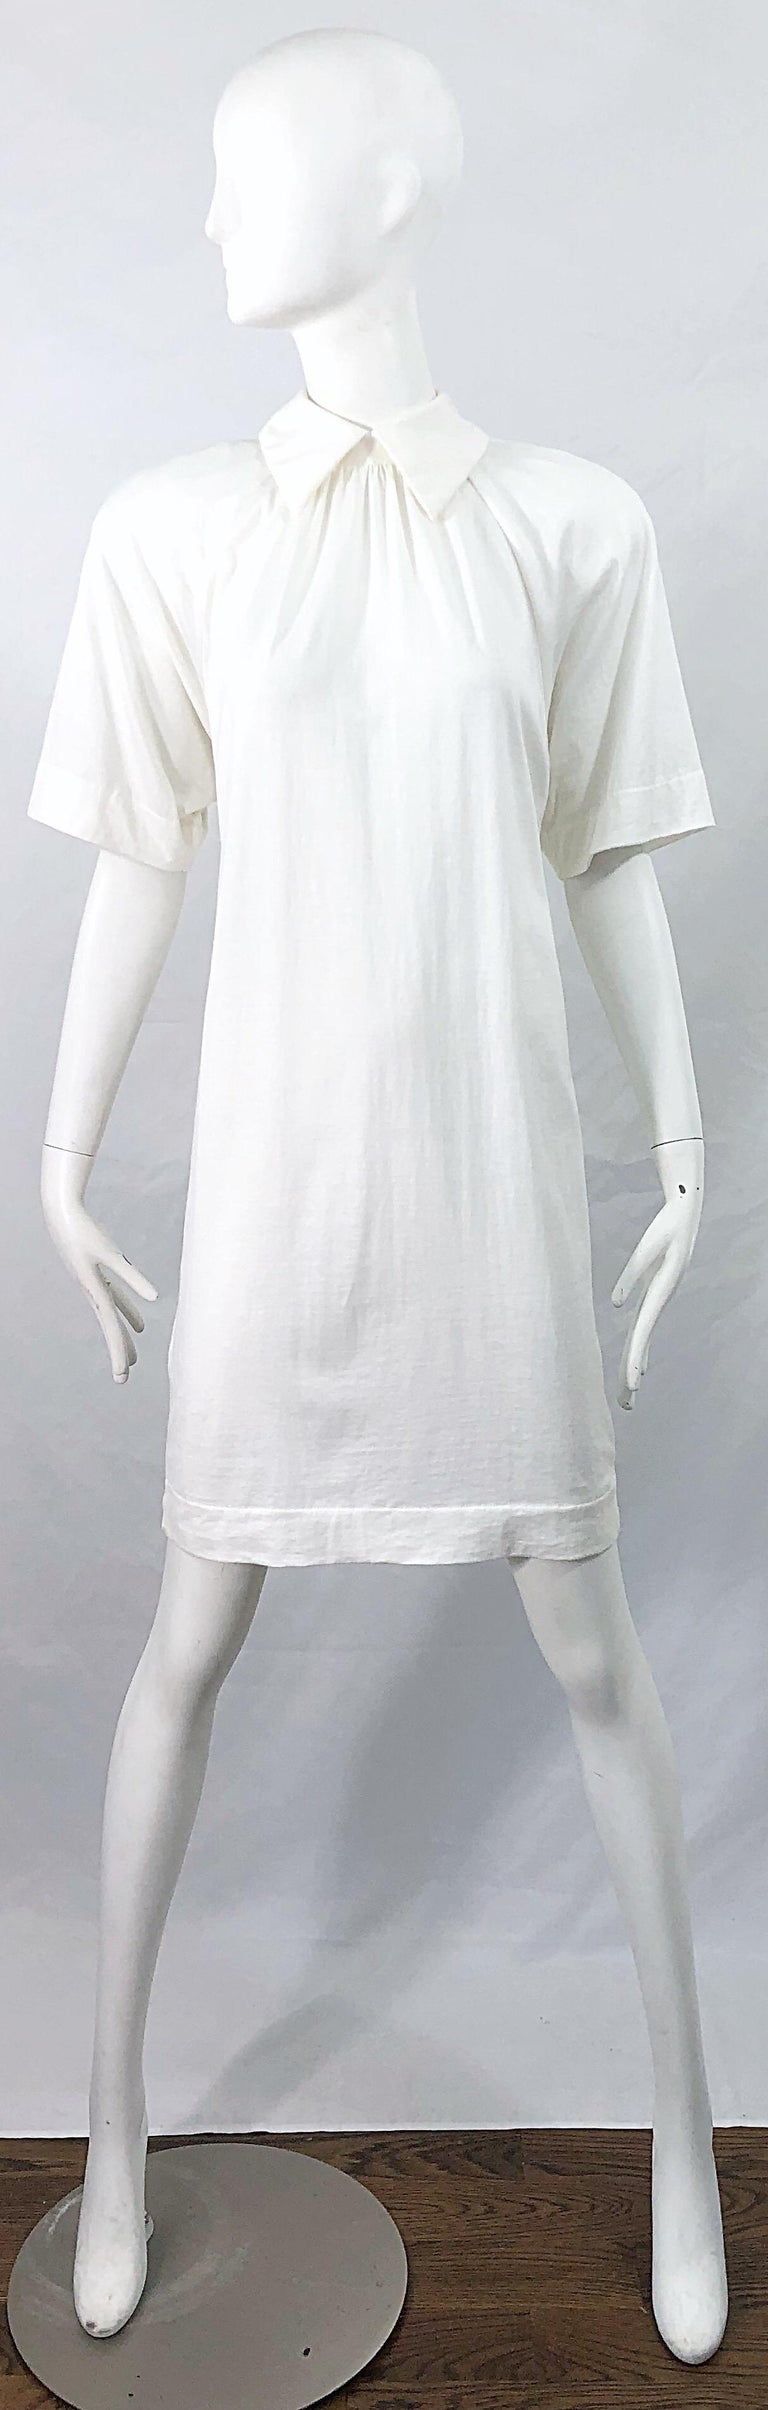 1990s James Purcell Size 6 / 8 White Cotton Vintage 90s T-Shirt Dress For Sale 11